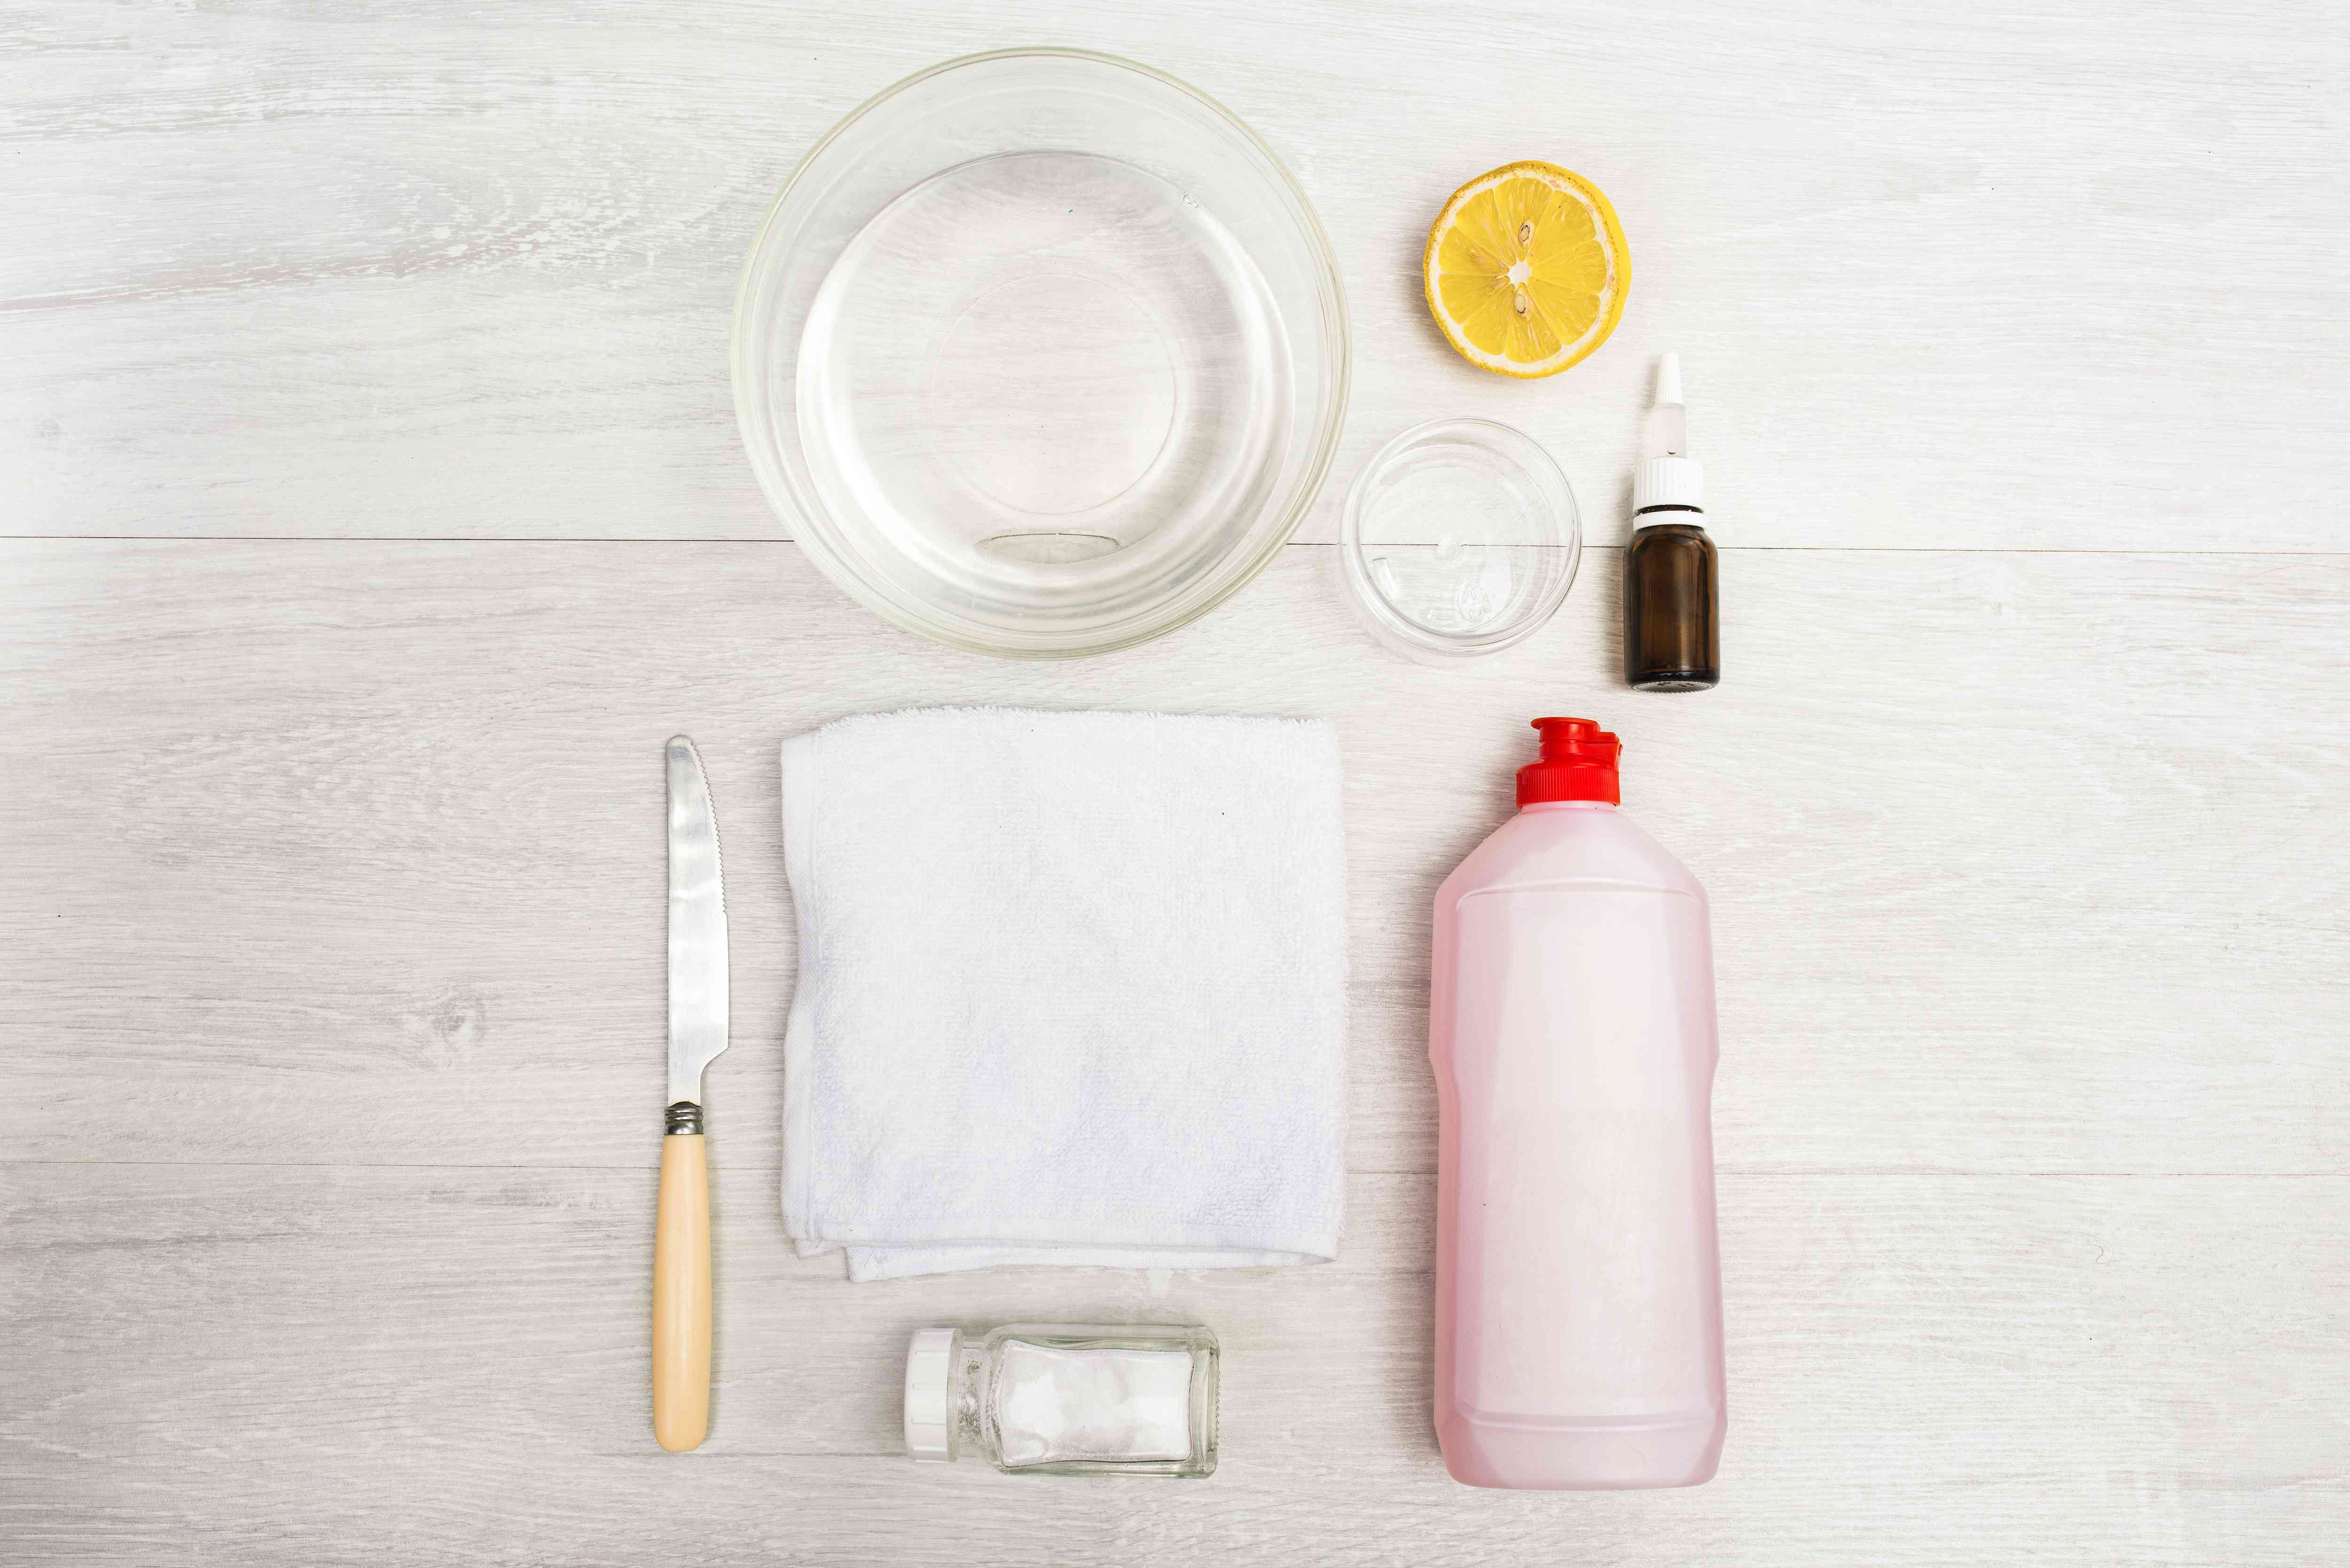 materials for getting rid of rust stains